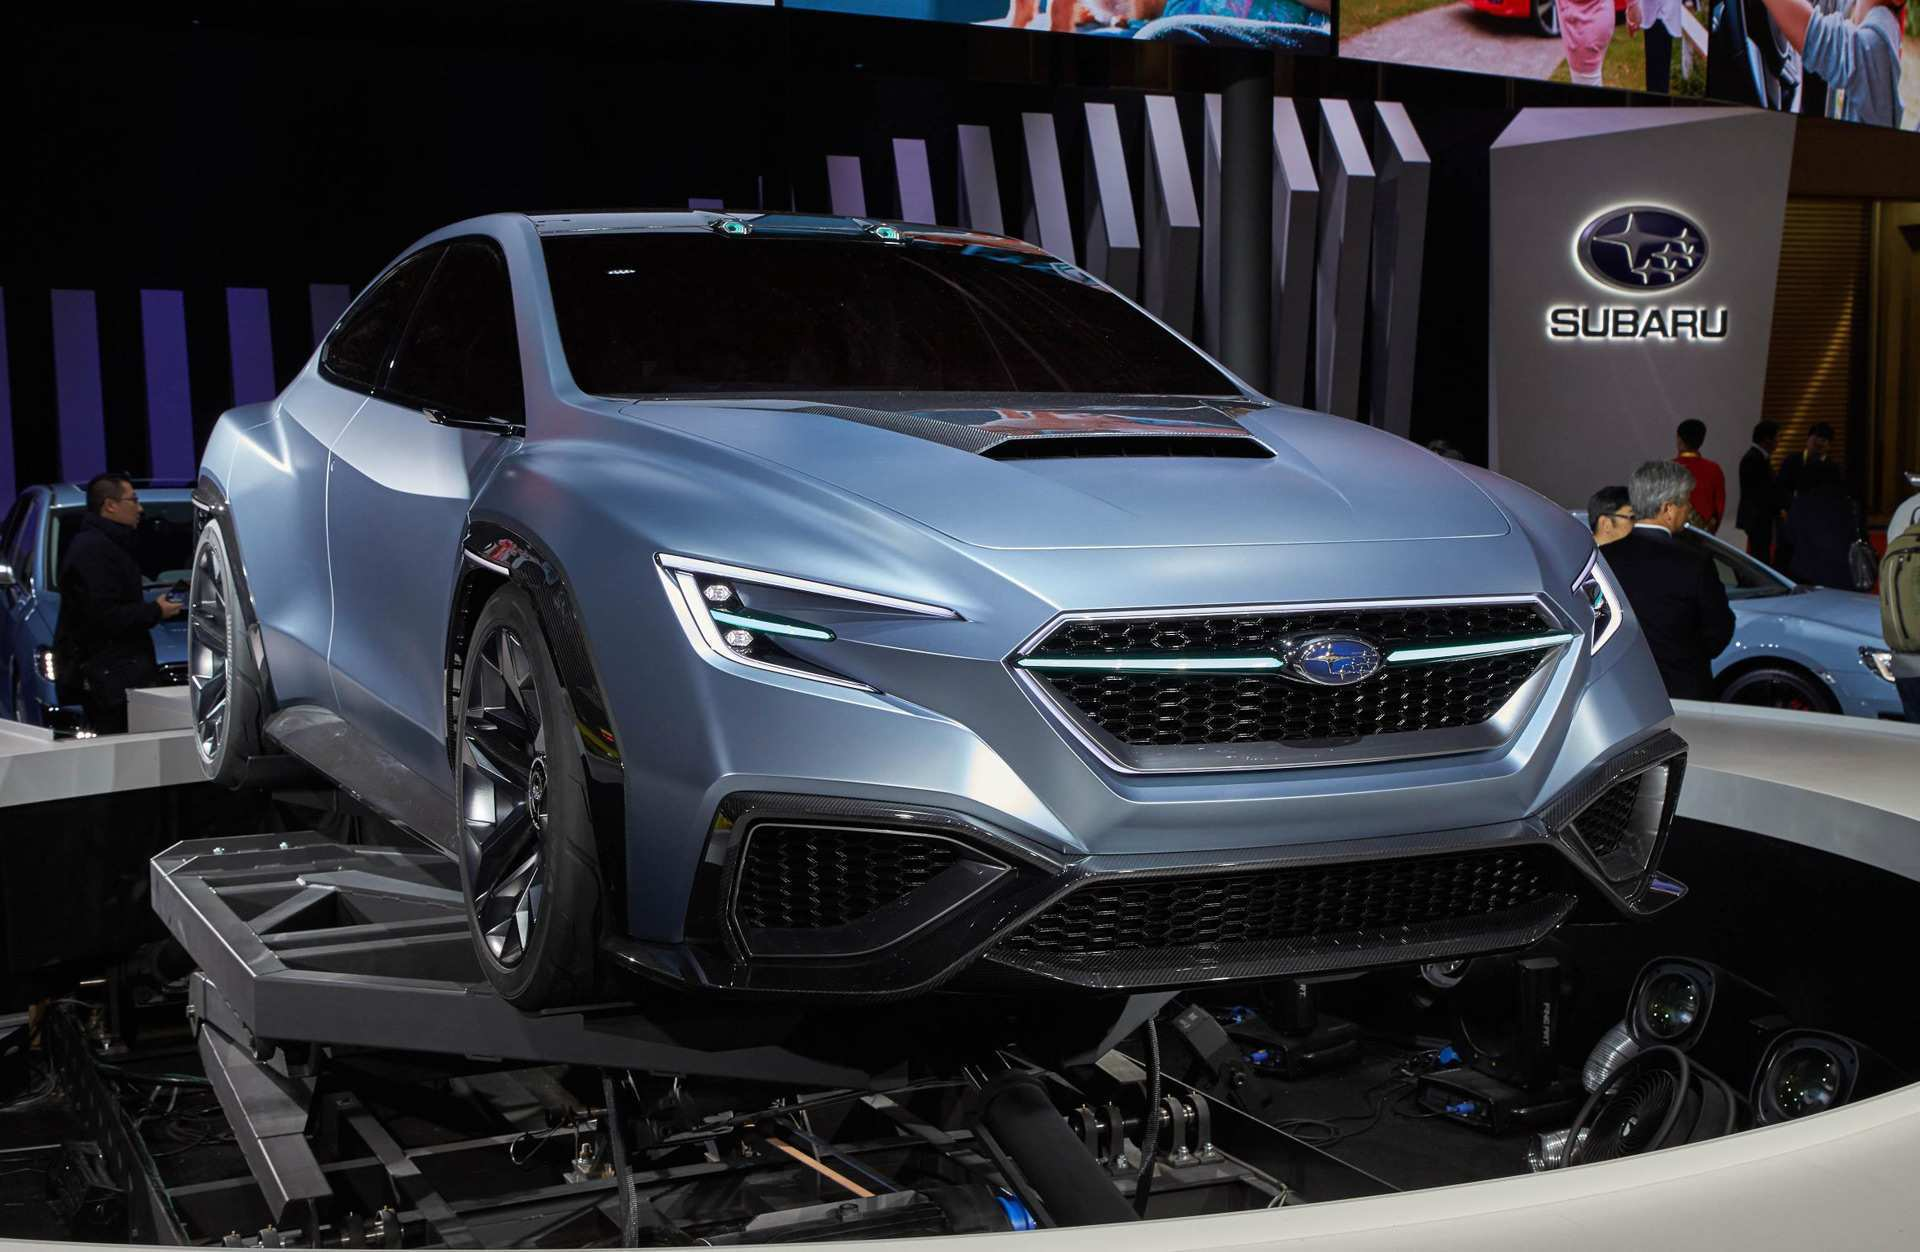 85 The Best Subaru Wrx Sti 2020 Concept Specs